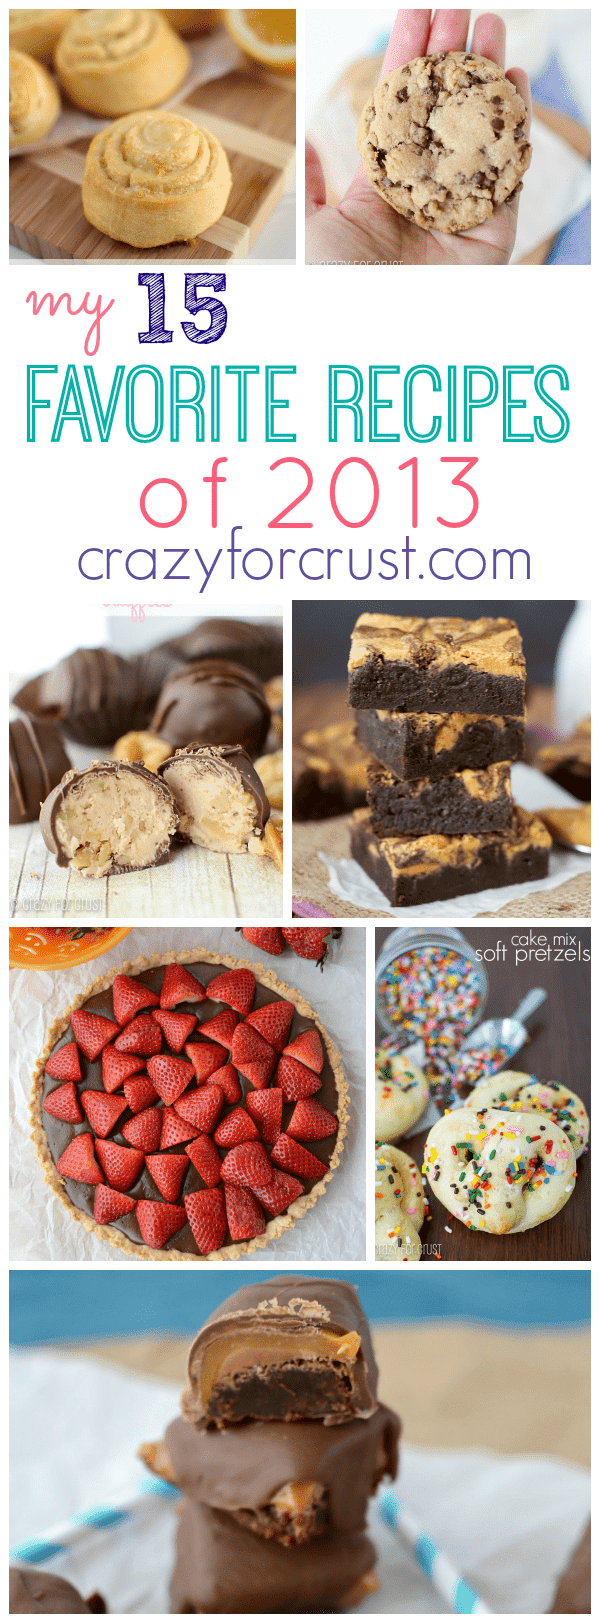 15 Favorite Recipes 2013 at crazyforcrust.com